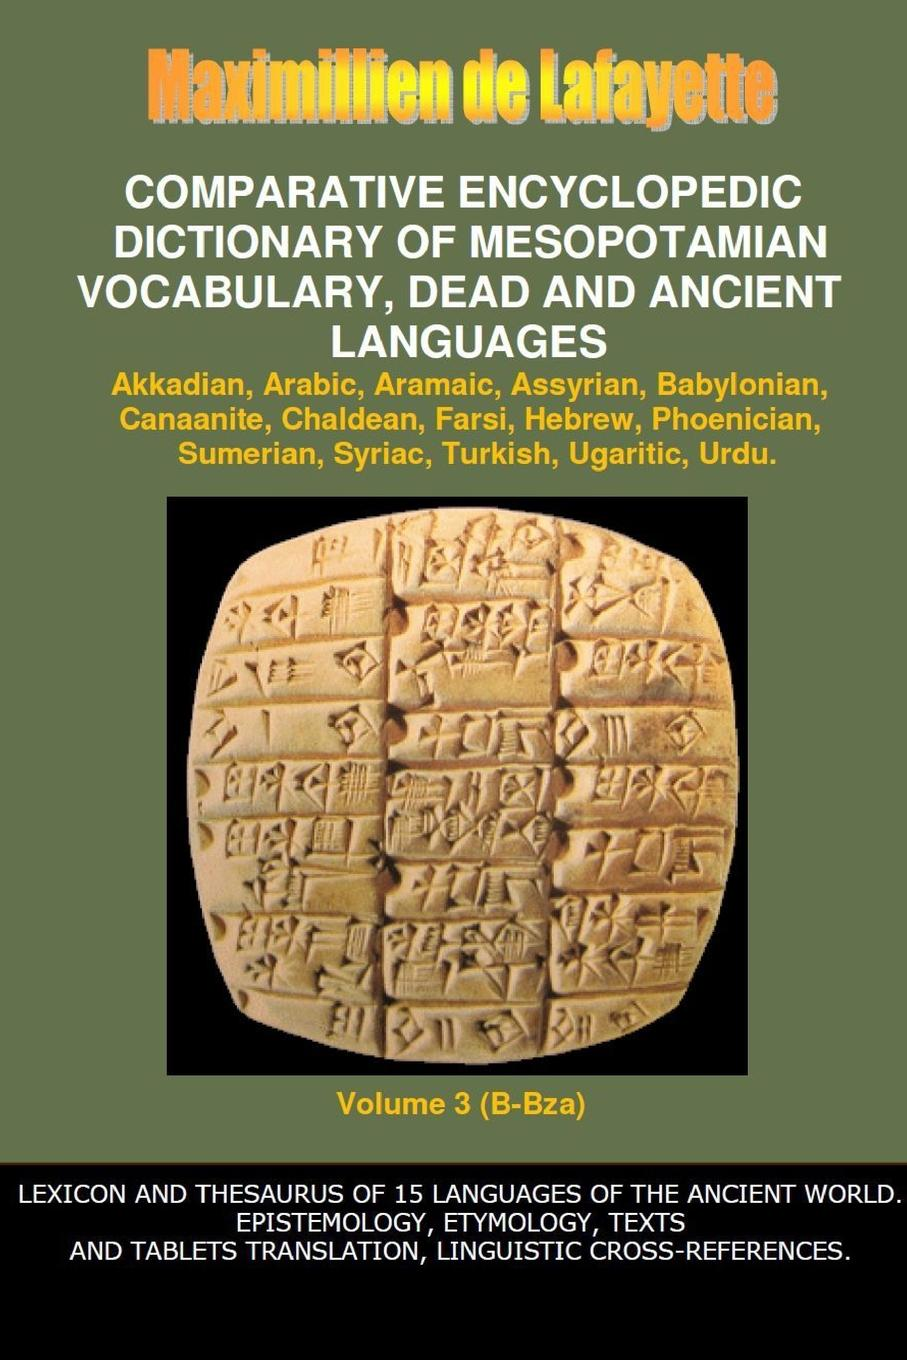 Maximillien De Lafayette V3.Comparative Encyclopedic Dictionary of Mesopotamian Vocabulary Dead . Ancient Languages larry a nichols george a mather alvin j schmidt encyclopedic dictionary of cults sects and world religions